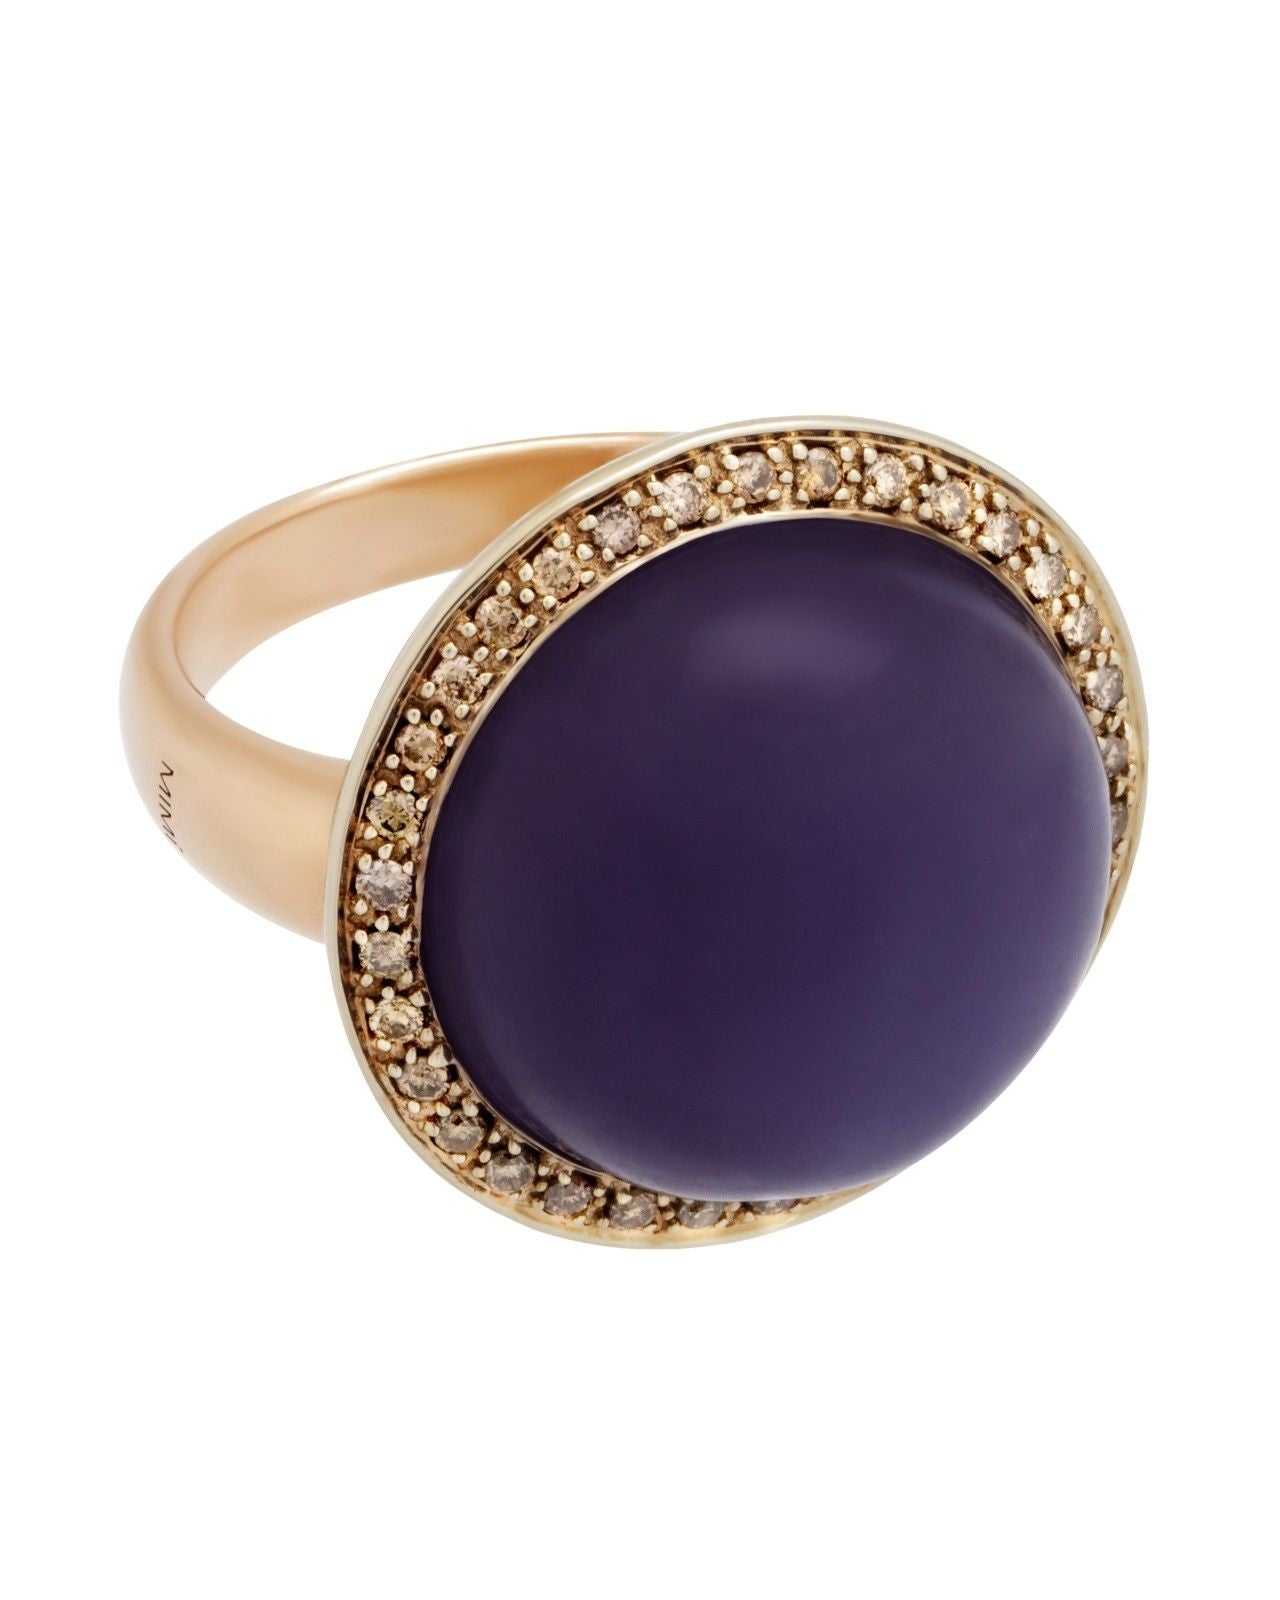 Mimi Milano Ring In Rose White 18K Gold, Lavender Jade Diamonds A150CL8M